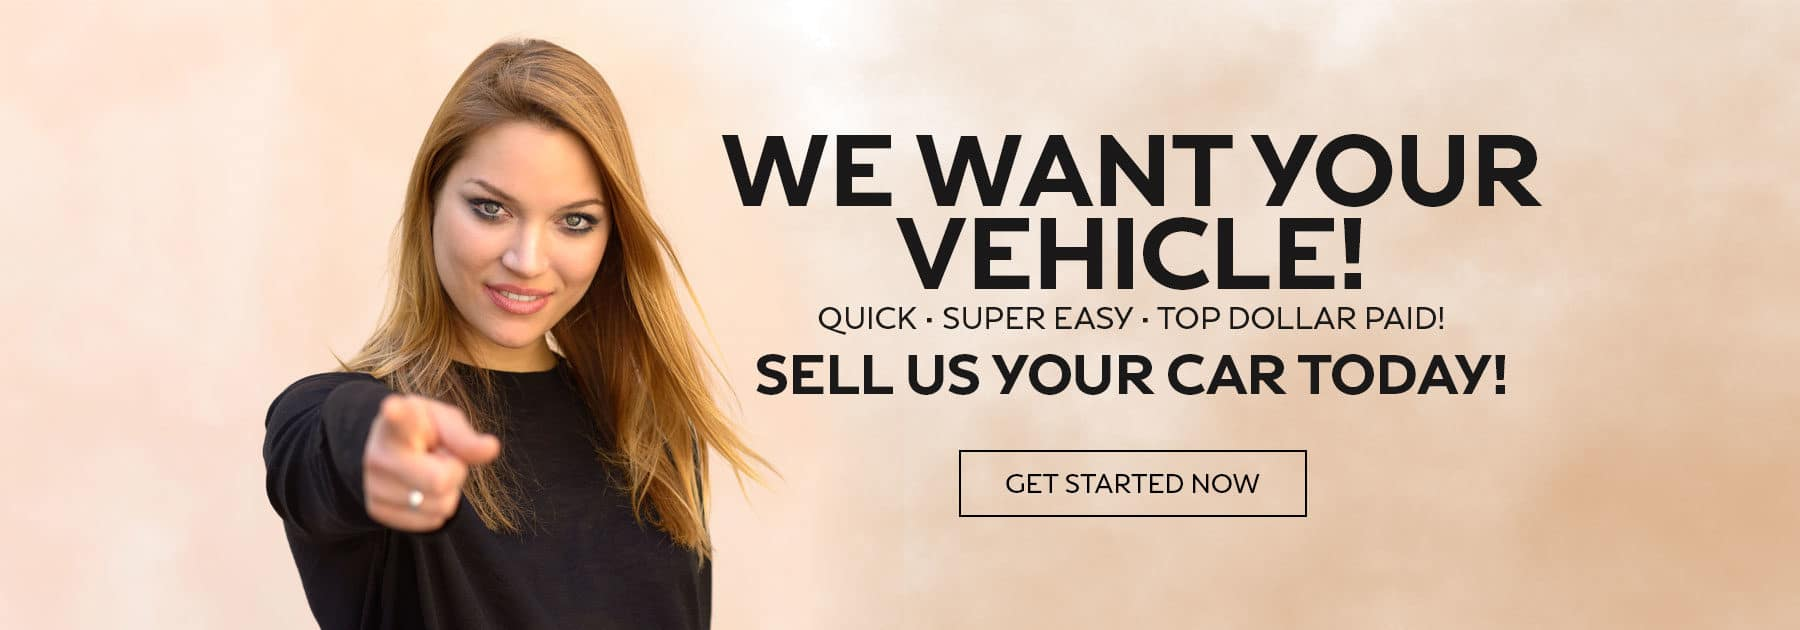 RInf-hl-DI-sell-us-your-vehicle-10-21